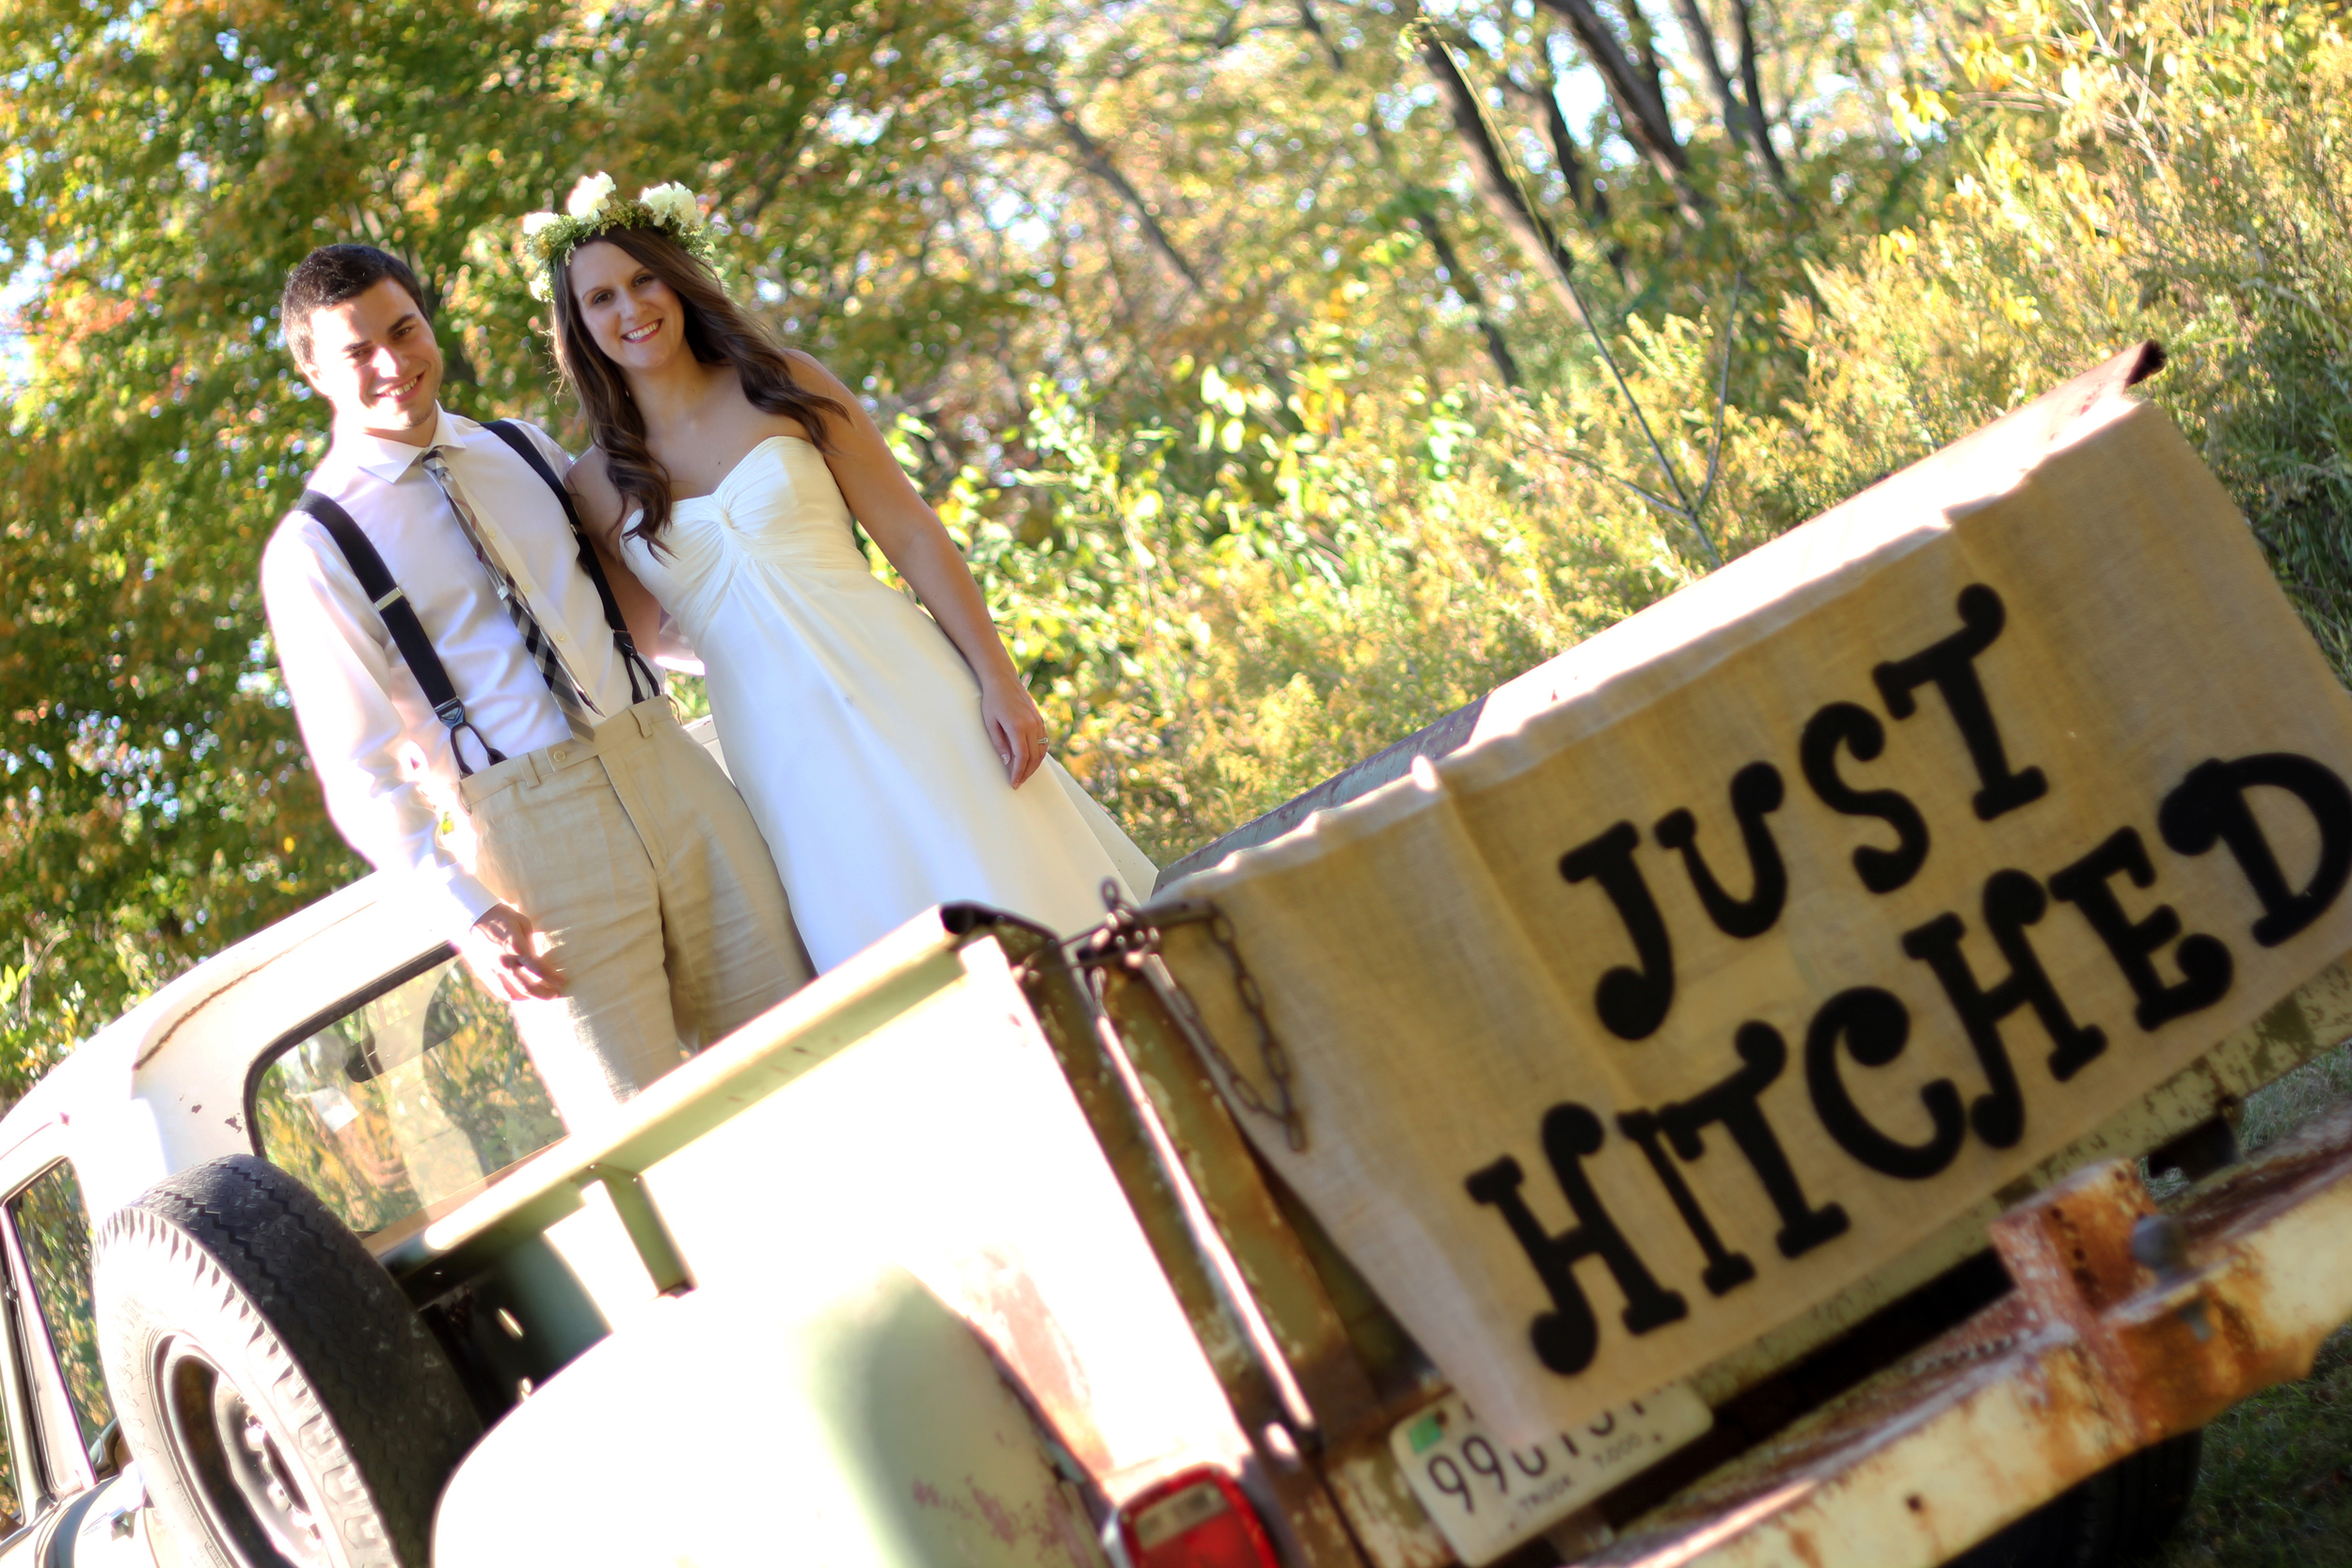 This old truck is at Bay Horse Inn and can be used for your wedding photos.